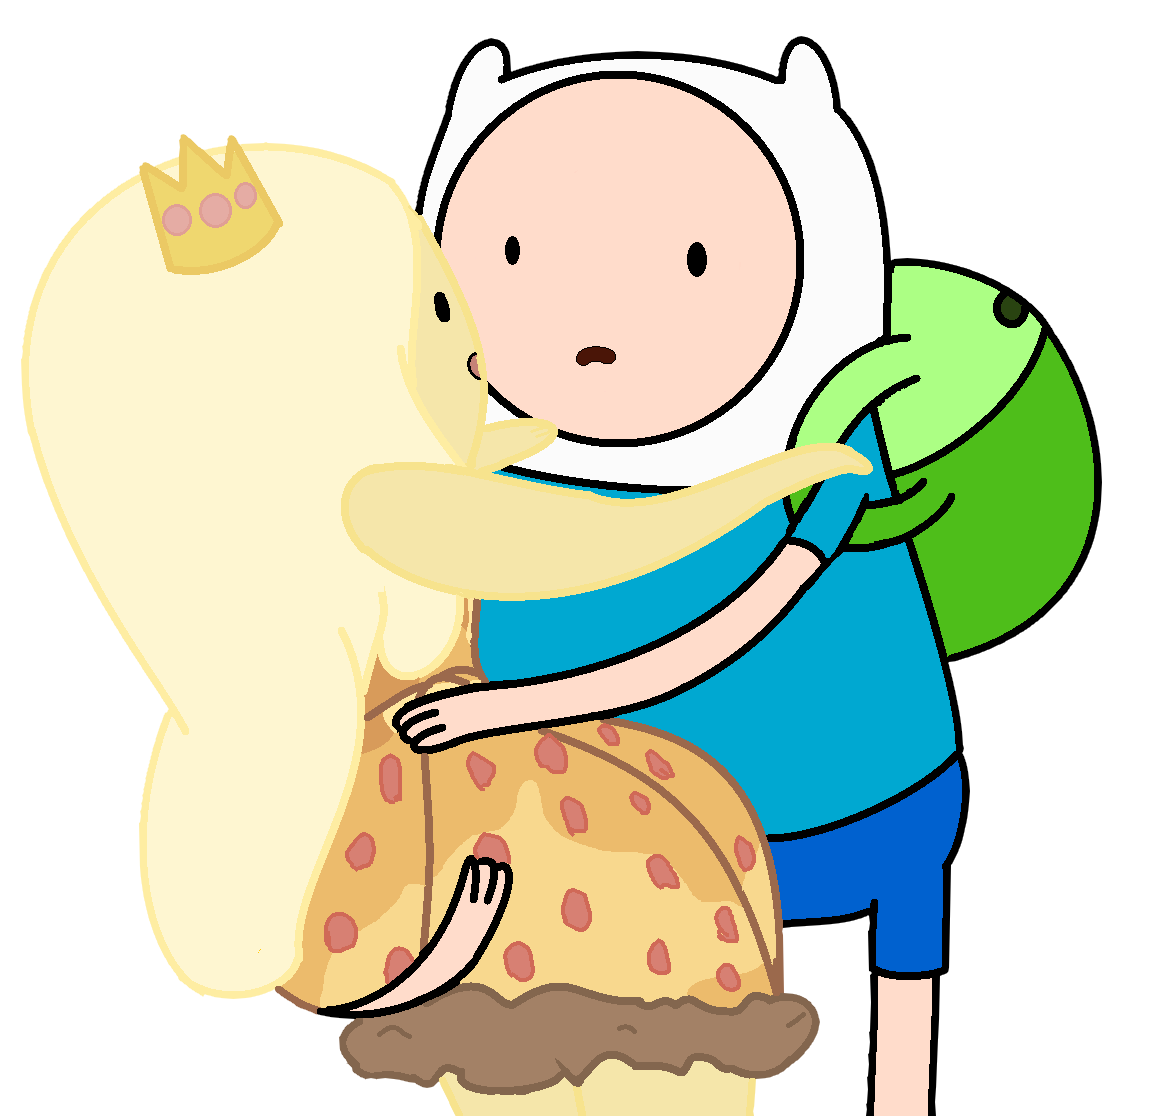 Adventure time finn png. Image pizza princess and